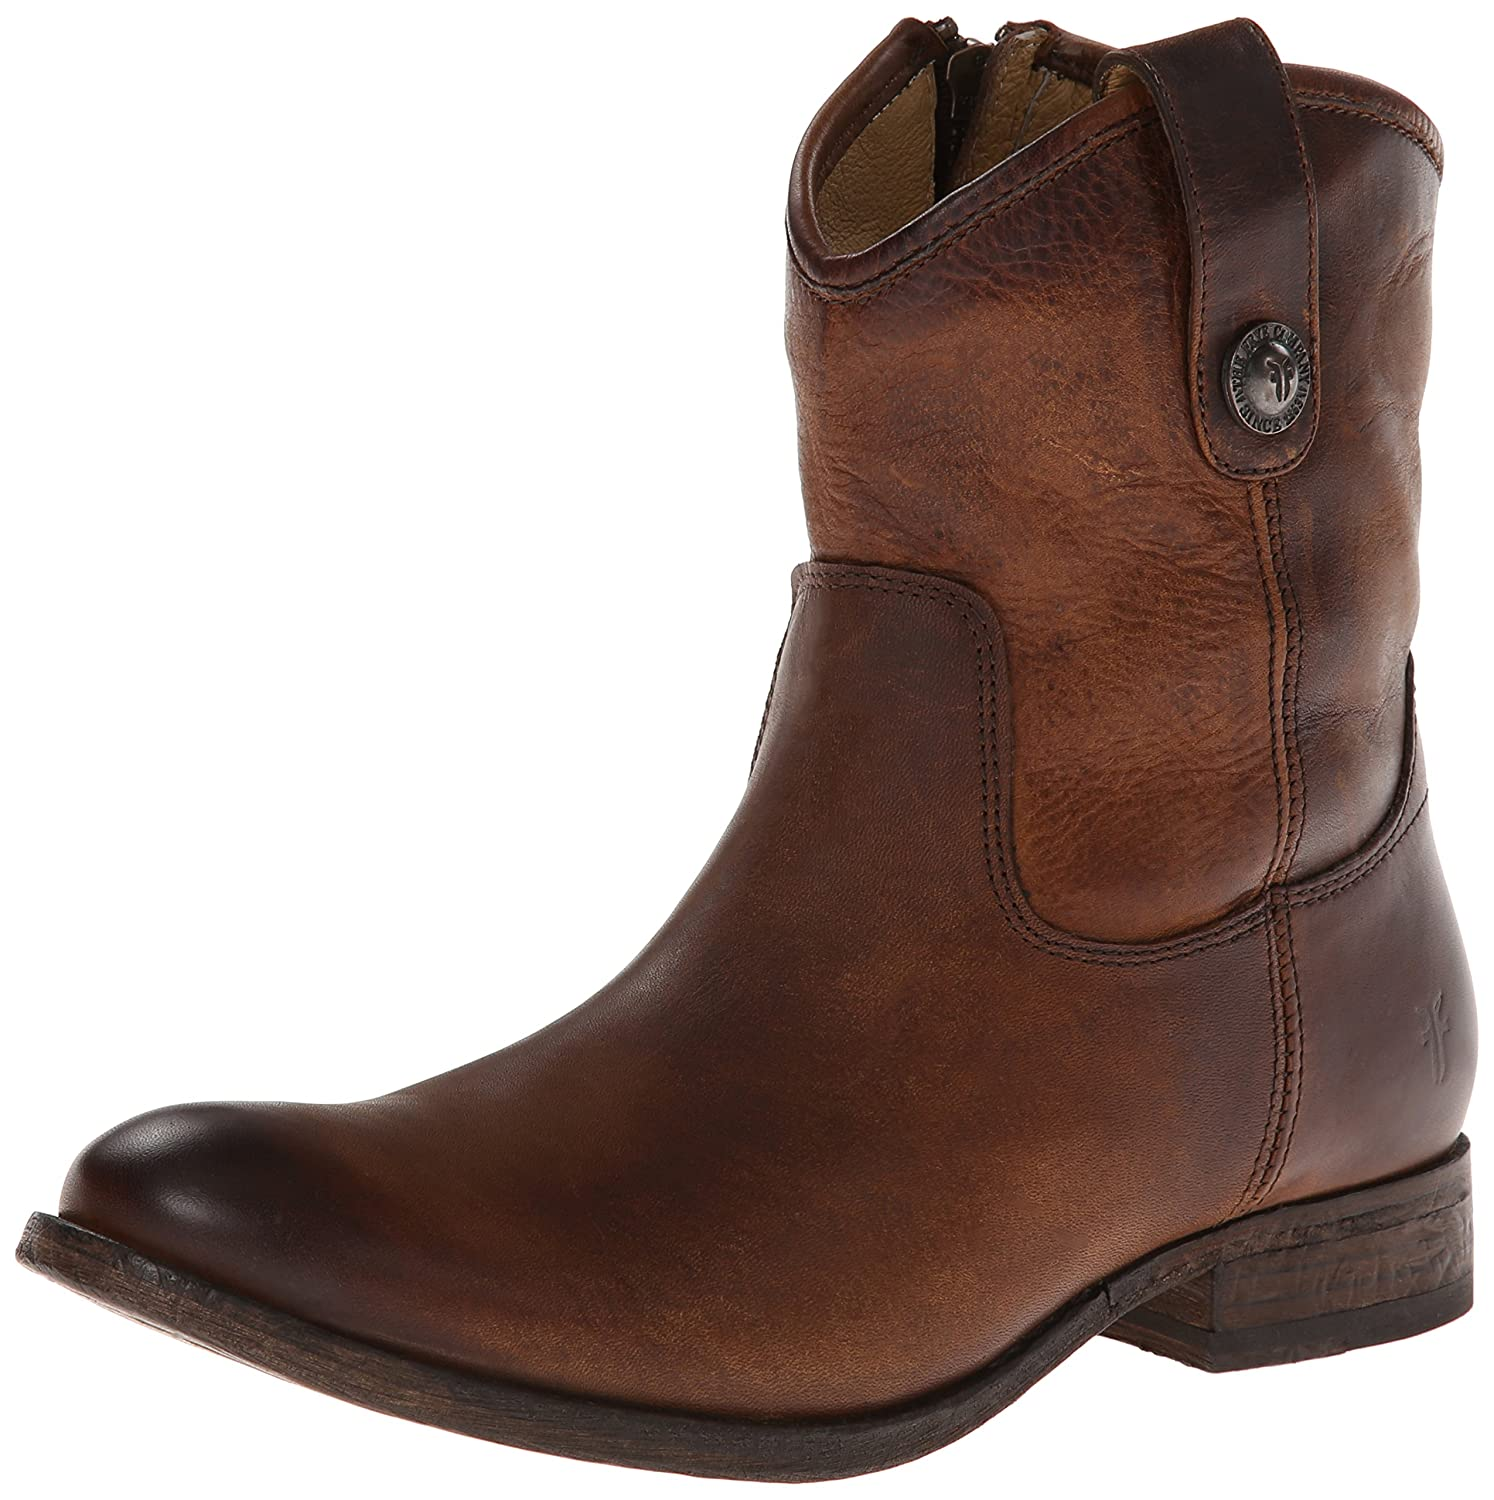 FRYE Women's Melissa Button Short Ankle Boot B00IMIFWR8 5.5 B(M) US|Dark Brown Washed Antique Pull-up-77908